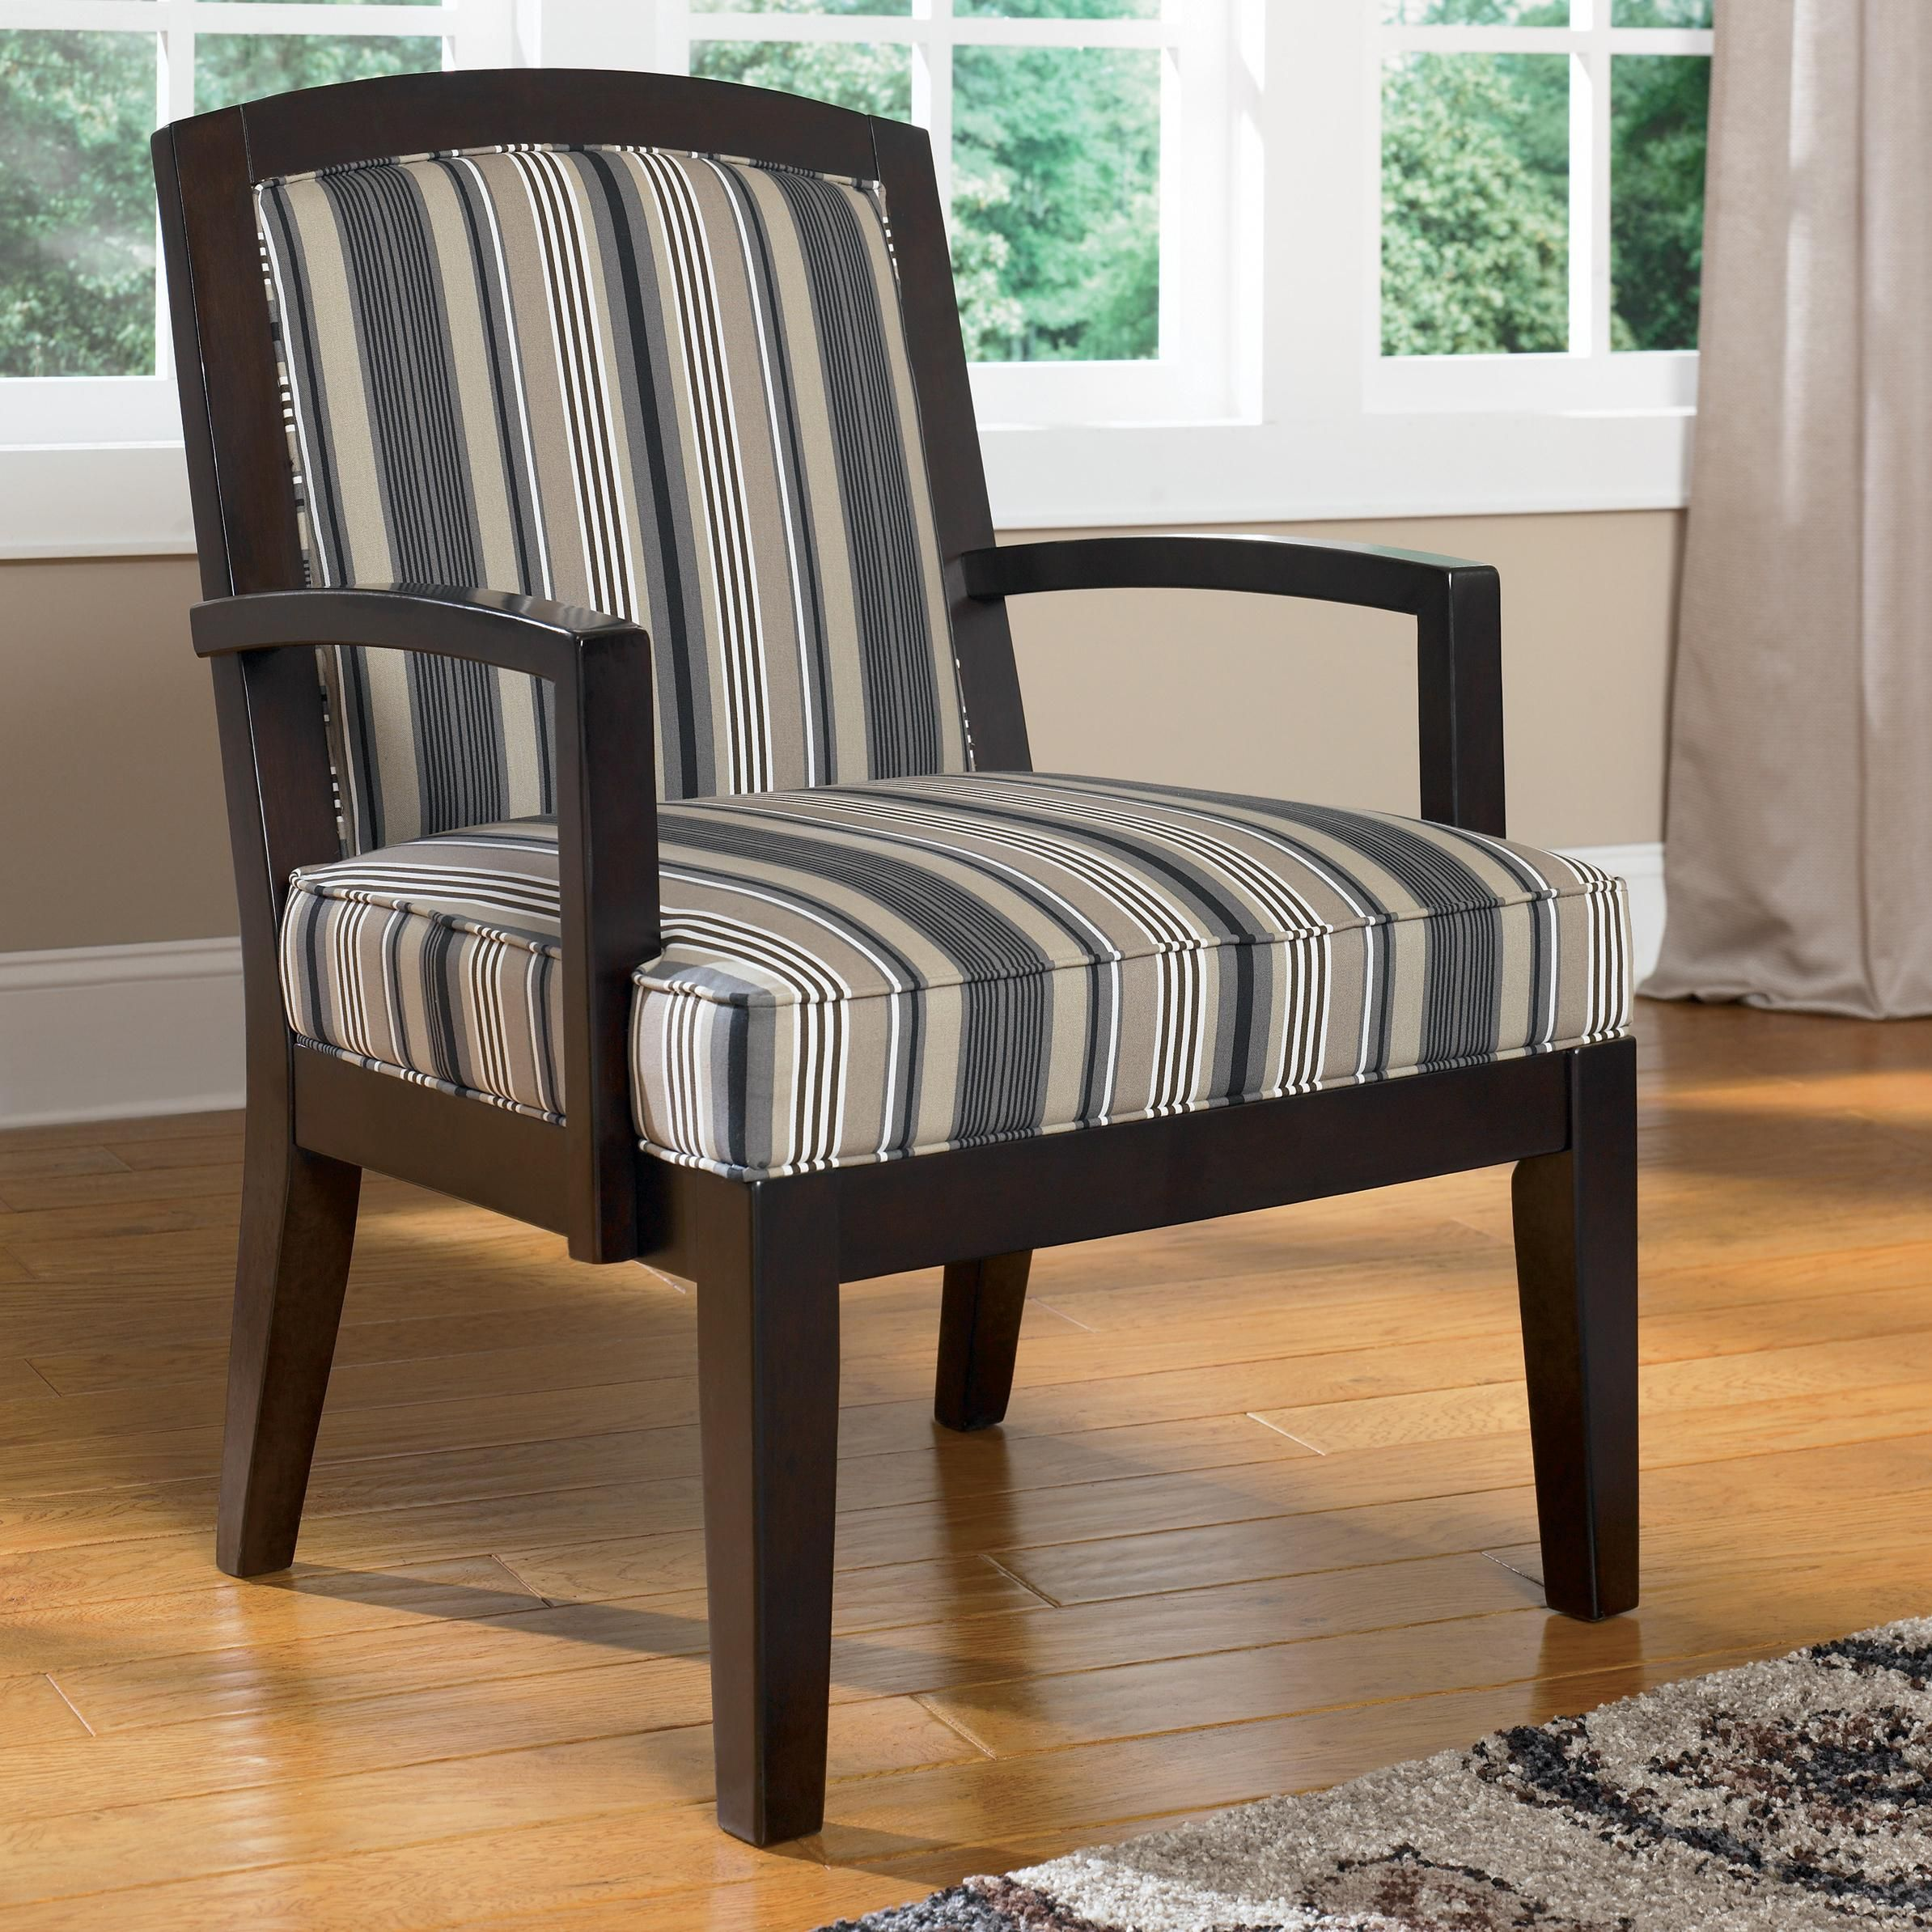 Ashley Furniture Toledo: Steel Showood Accent Chair By Ashley Furniture